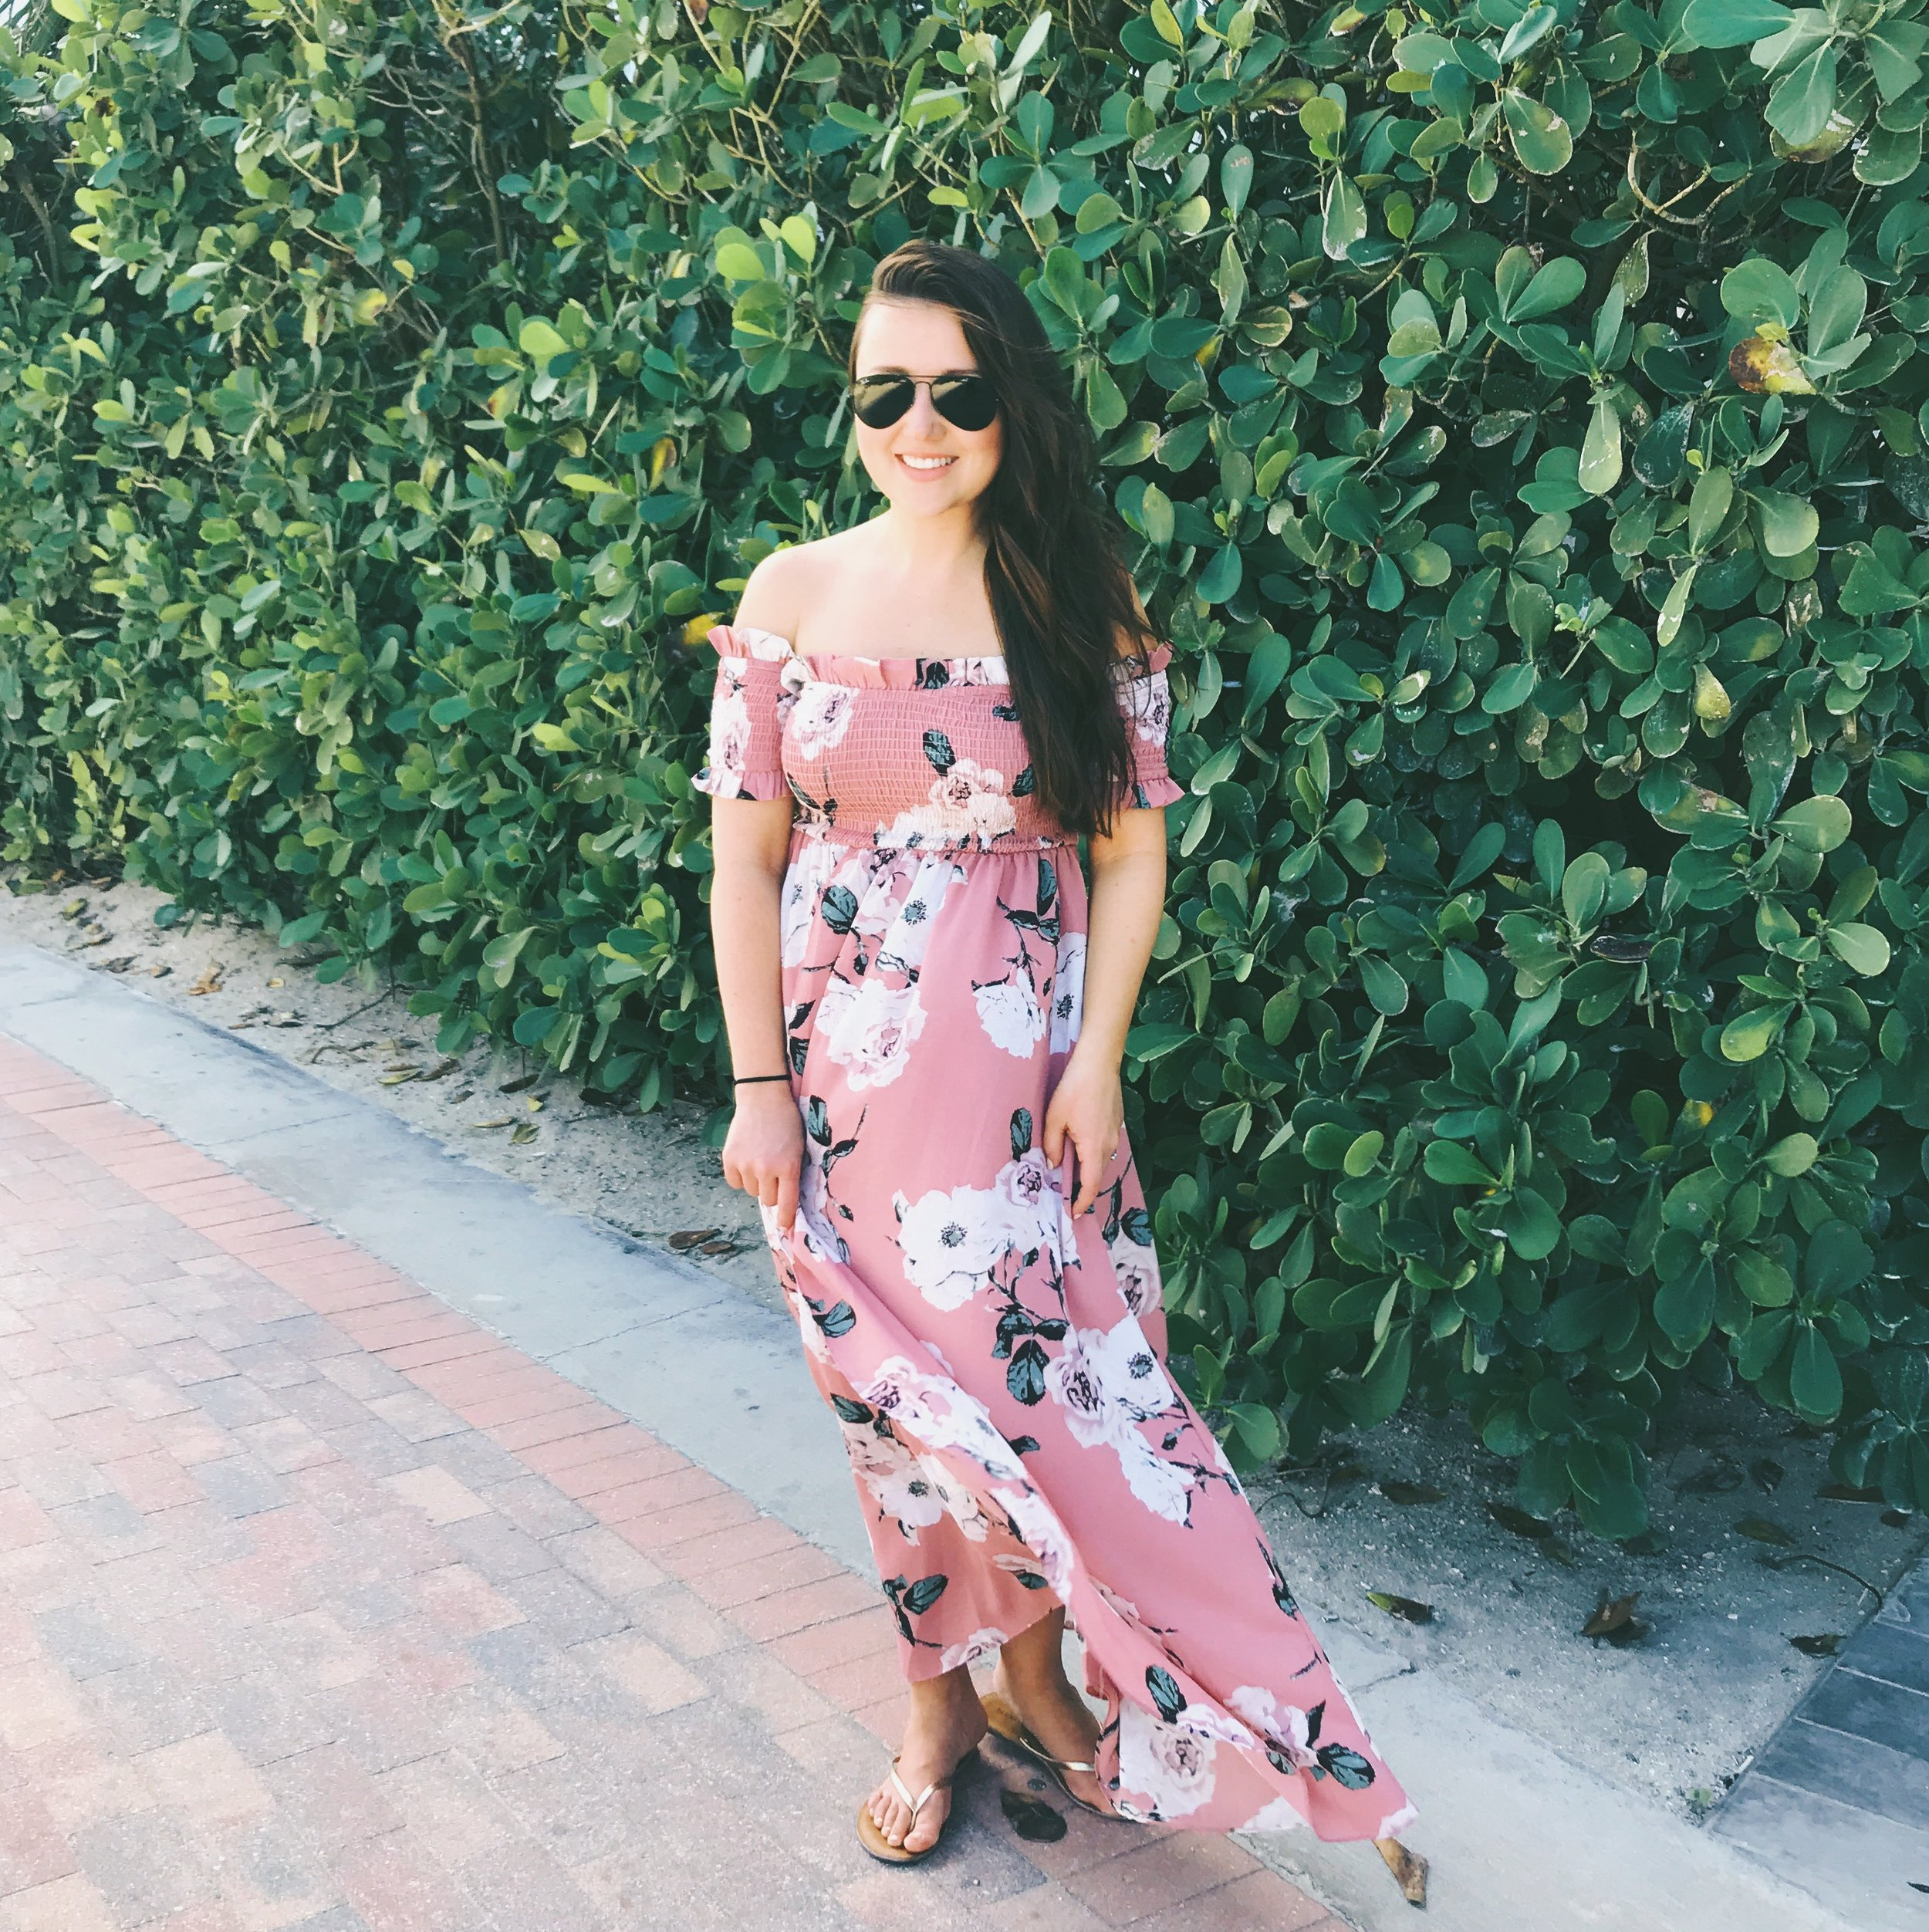 My floral off-the-shoulder dress is currently under $25 here:  http://shrsl.com/s1rl